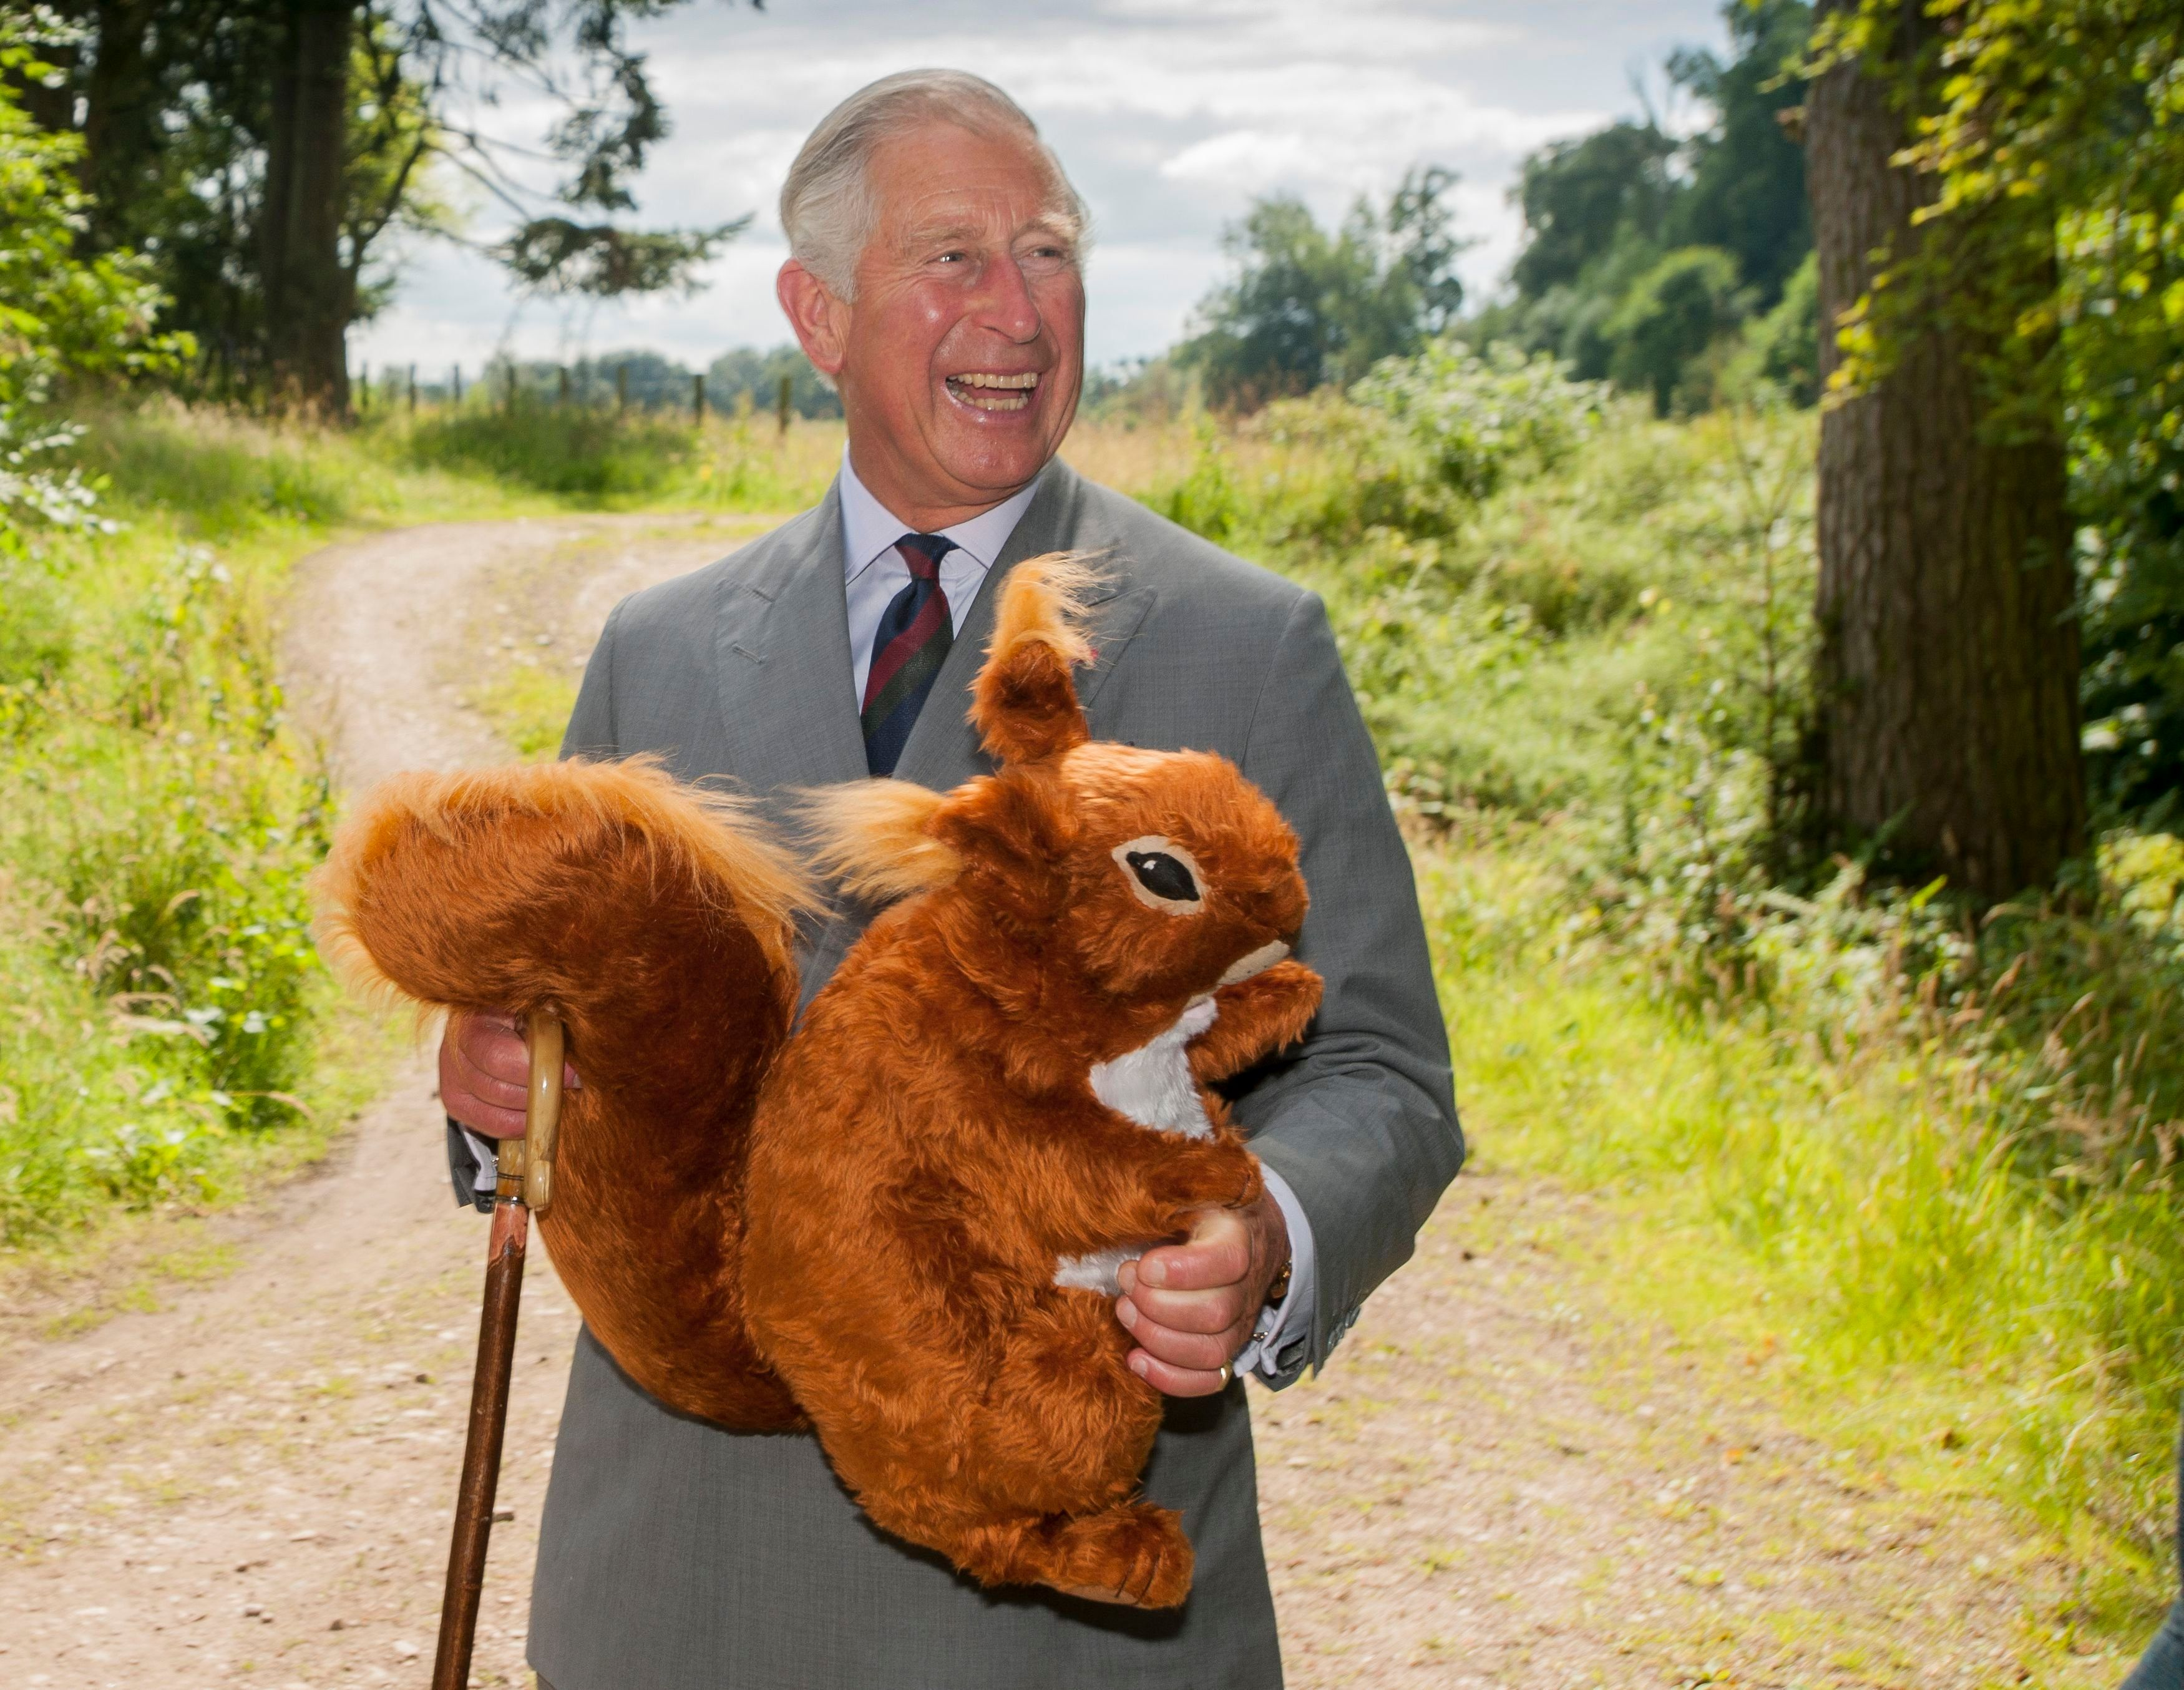 The Prince of Wales receives a toy red squirrel for Prince George, presented by the Scottish Wildlife Trust during the visit to Murthly Castle, Perthshire to attend a reception mark the Trust's 50th anniversary.